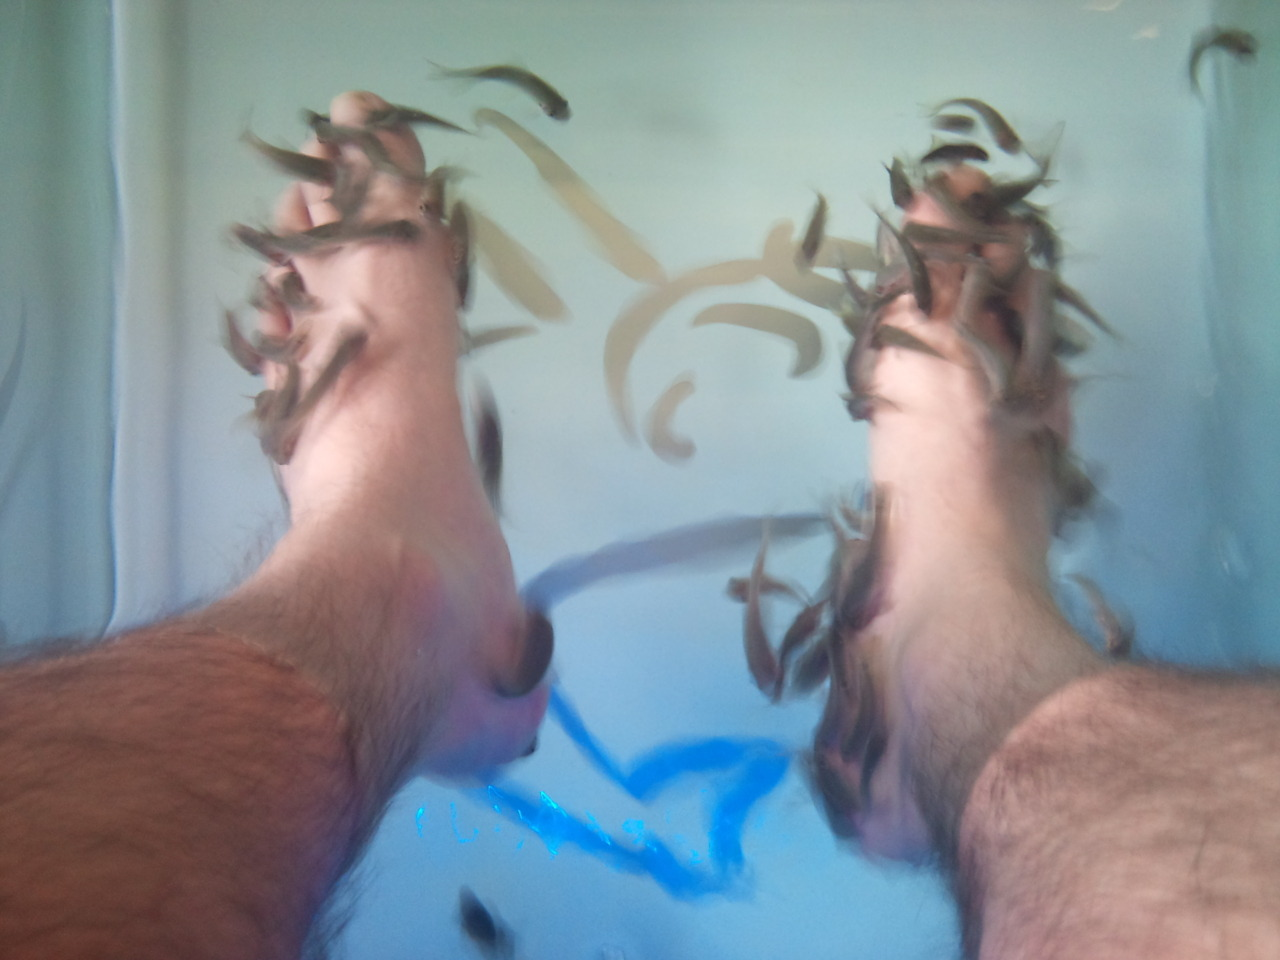 Getting my feet done. It's a bit fishy to be honest.